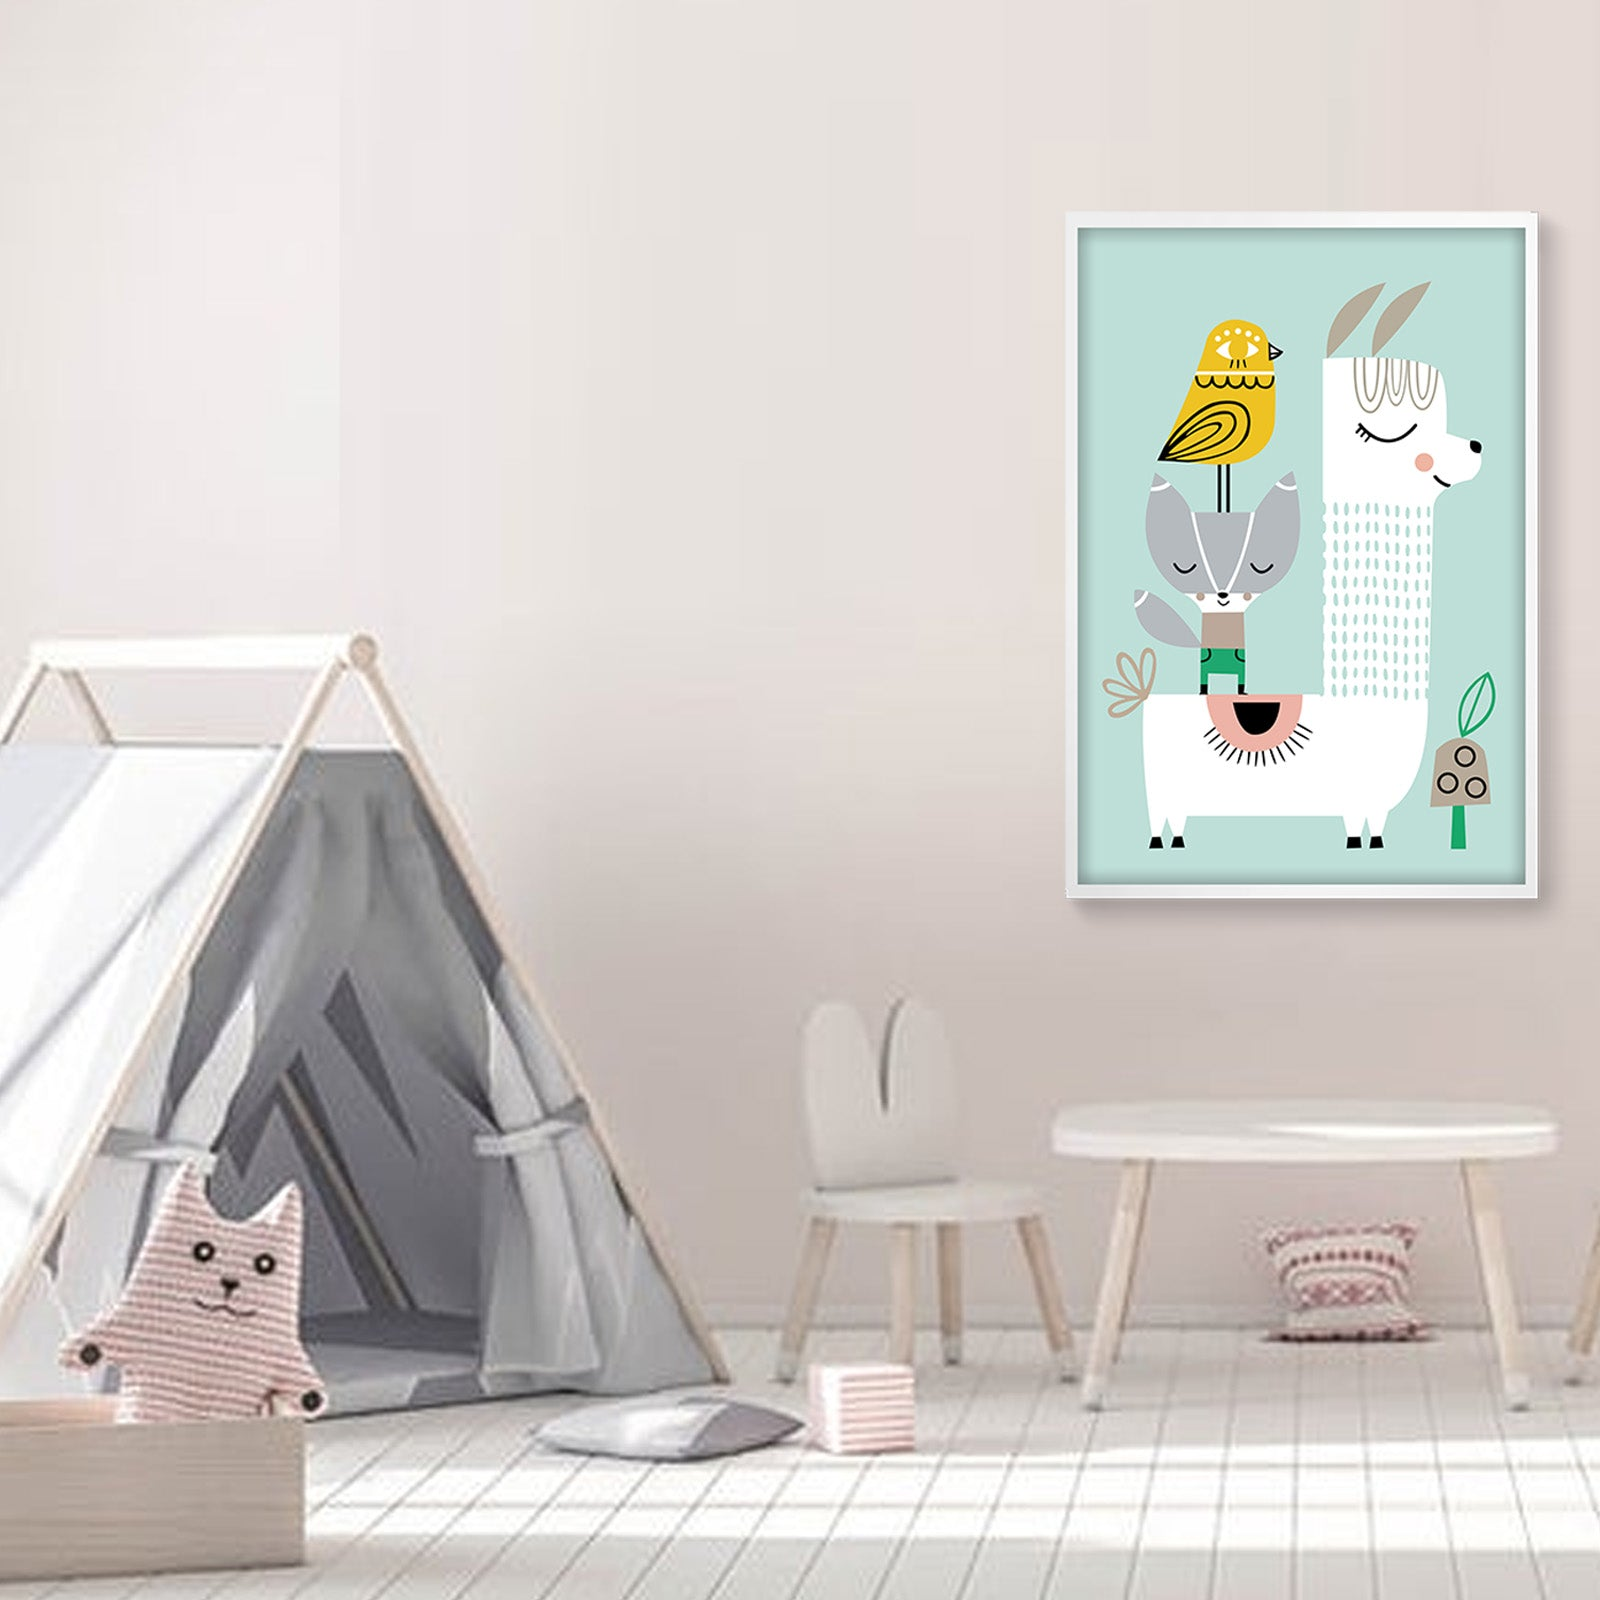 Pre-Order 60 days Delivery Framed Graphic Art Print  SOAPR0007 -  لوحه فنيه مطبوعه بالايطار - Shop Online Furniture and Home Decor Store in Dubai, UAE at ebarza